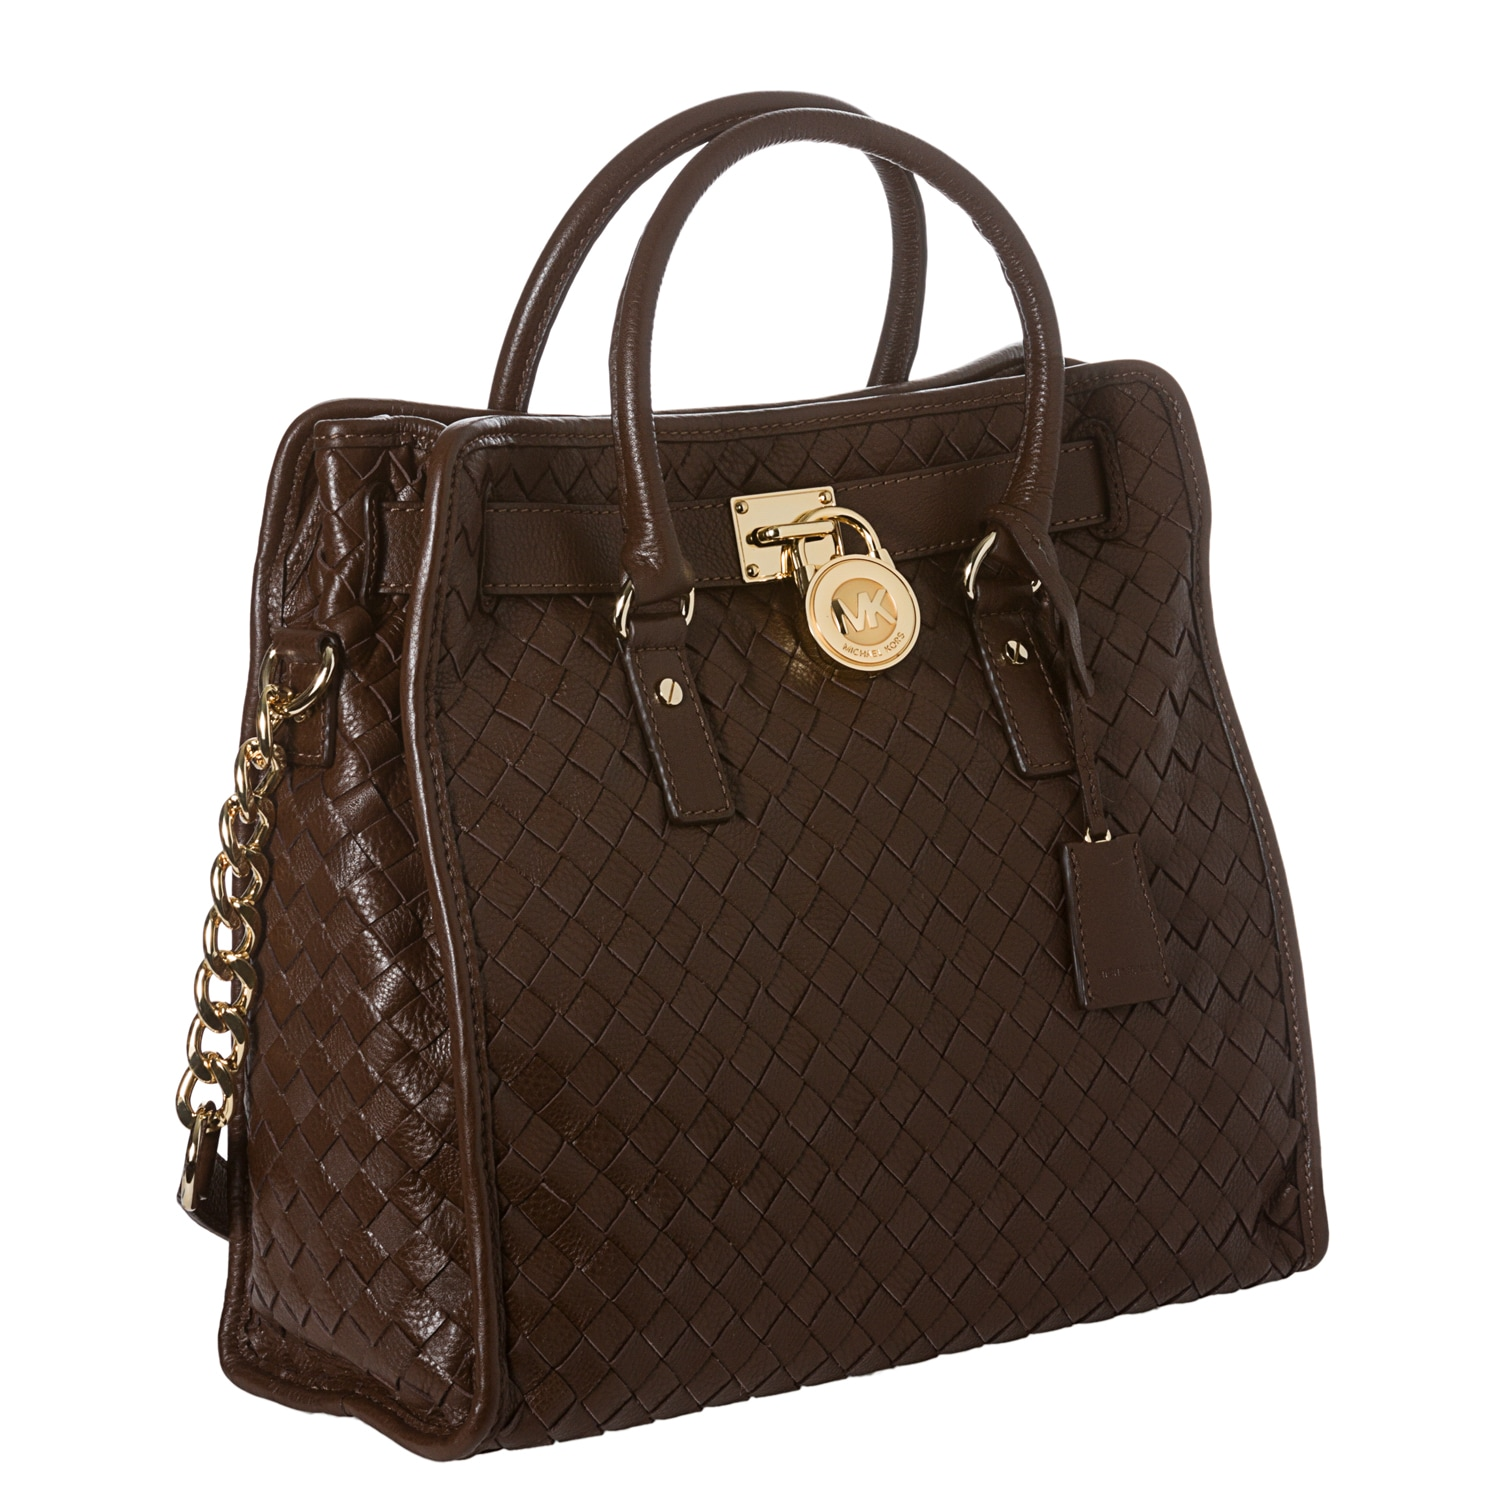 Michael Kors Hamilton Woven Leather Tote Bag Free Shipping Today 7739850